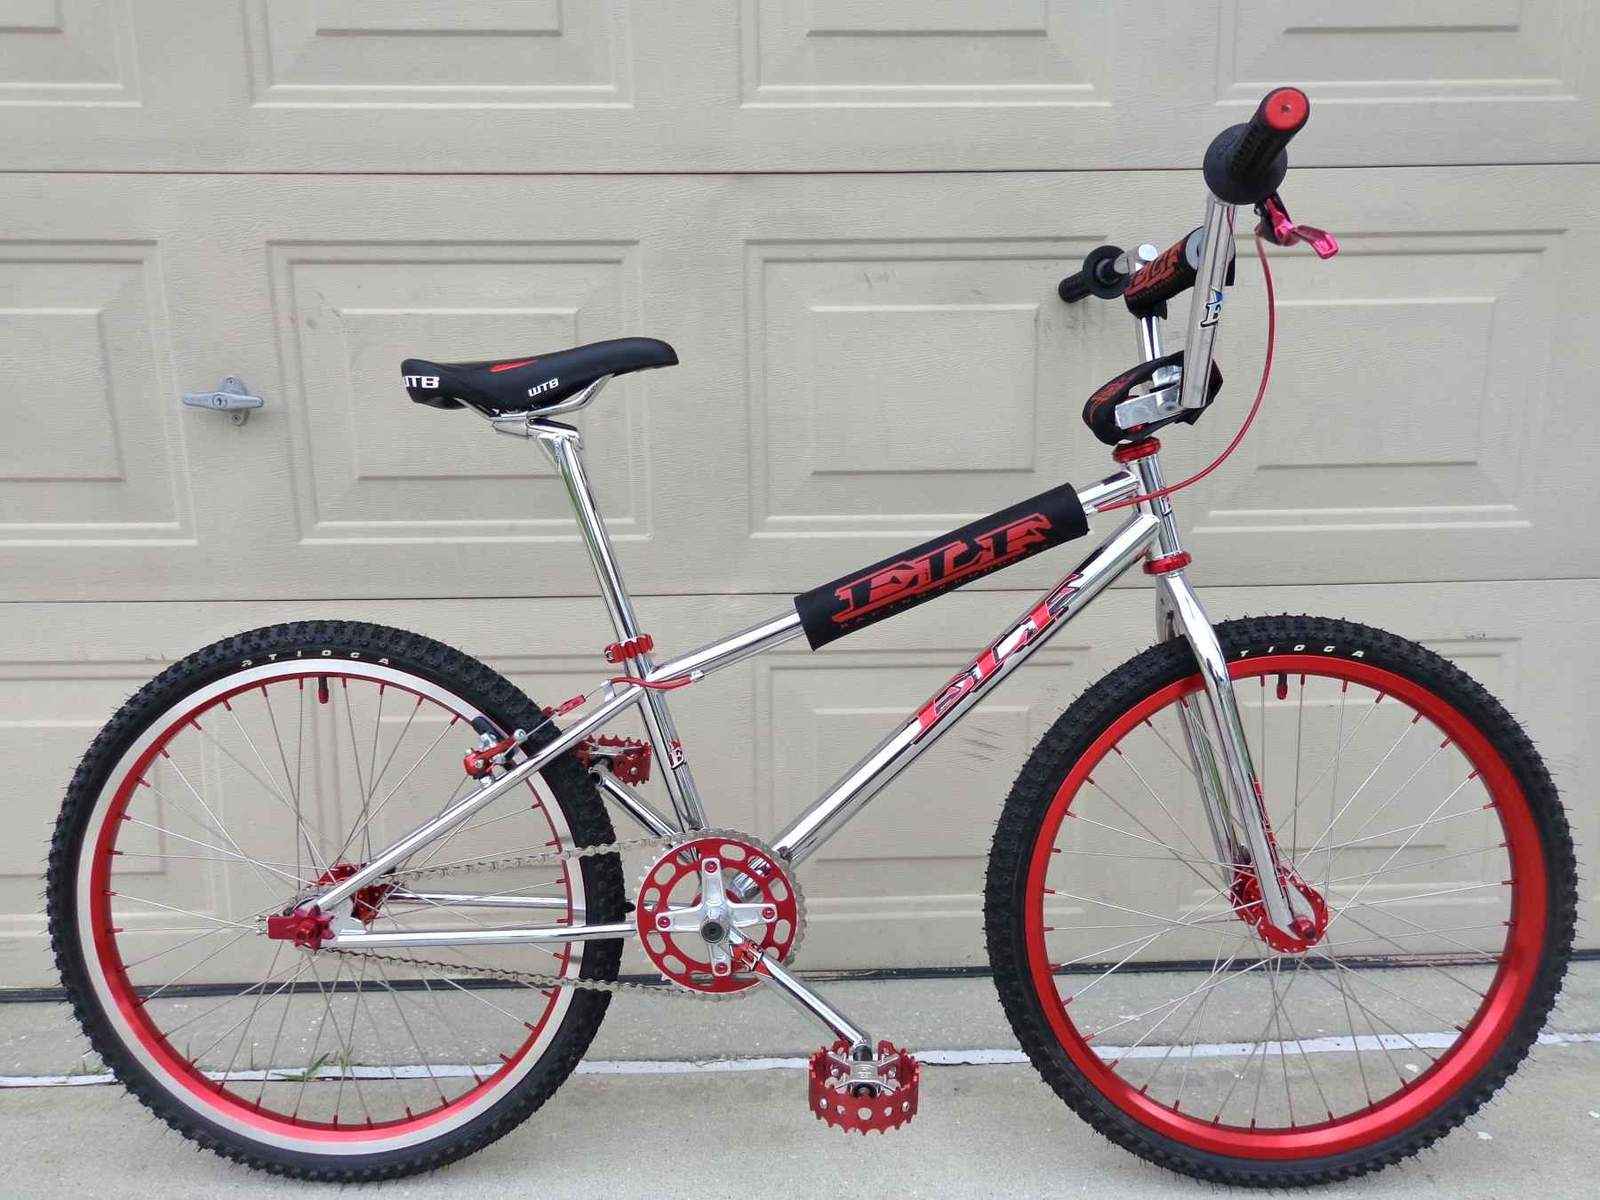 http://uploads.bmxmuseum.com/user-images/31504/dsc040015cb89b5e8187e_blowup5cbf5b350d.jpg